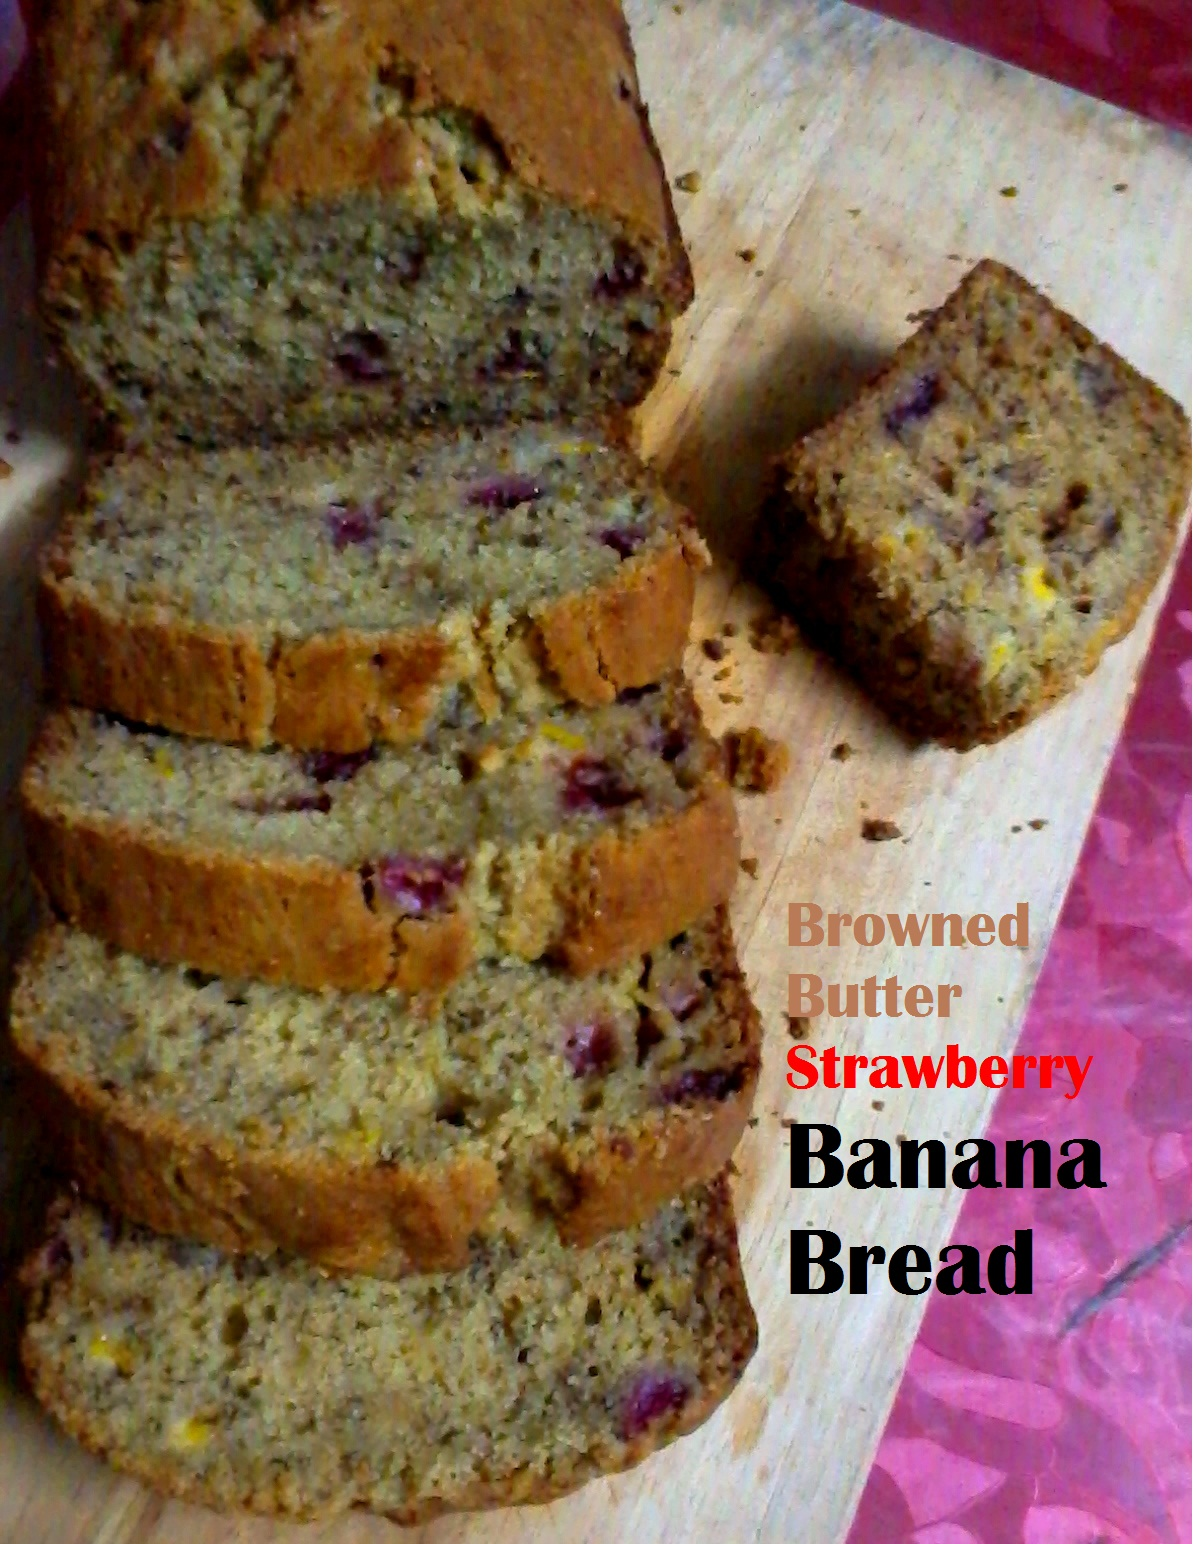 Bakescapade!: Brown Butter Strawberry Banana Bread